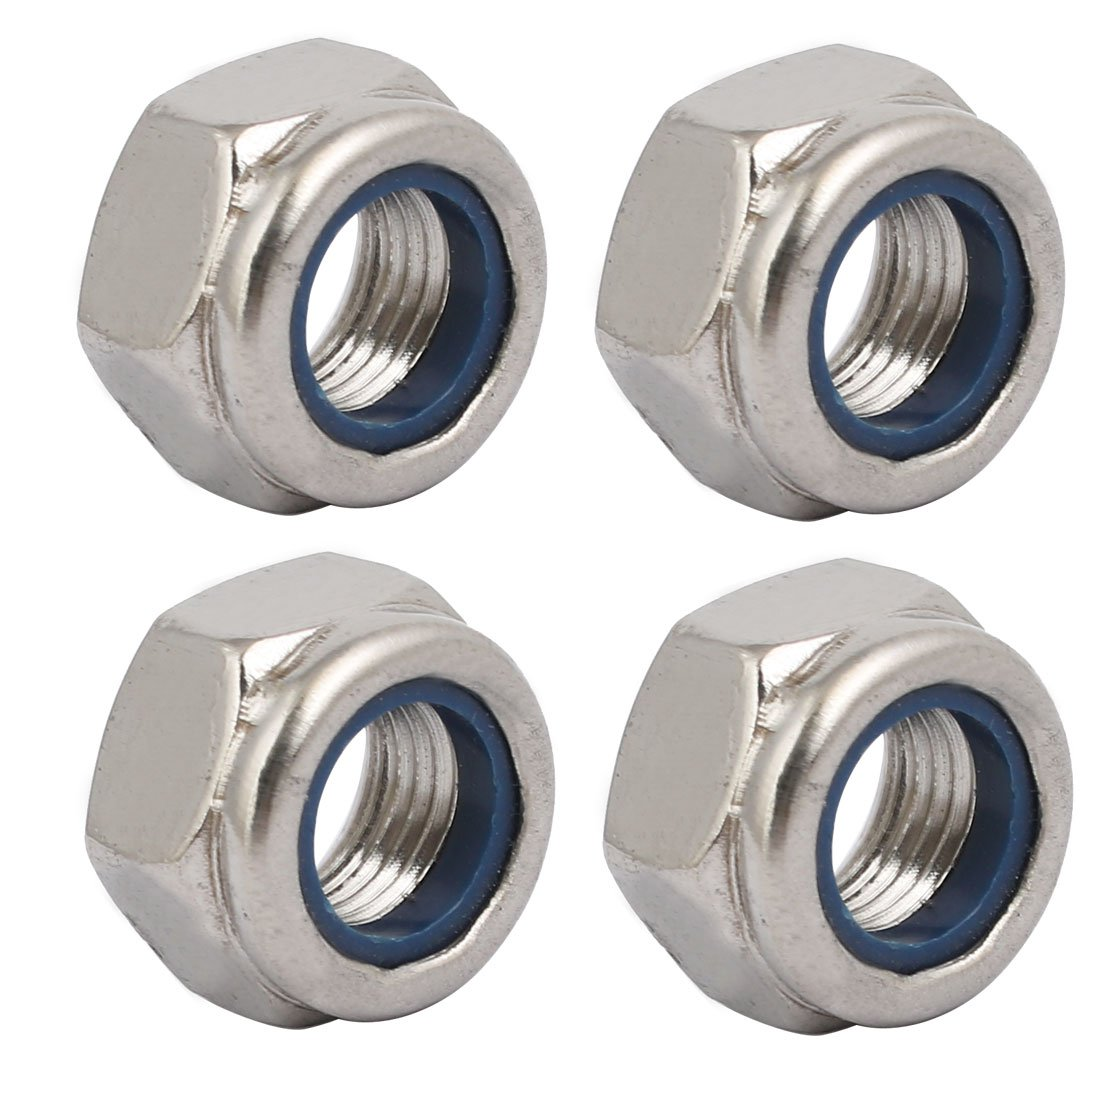 10 Pcs 304 Stainless Steel Hex Nuts M6 x 0.75mm Pitch Metric Fine Thread